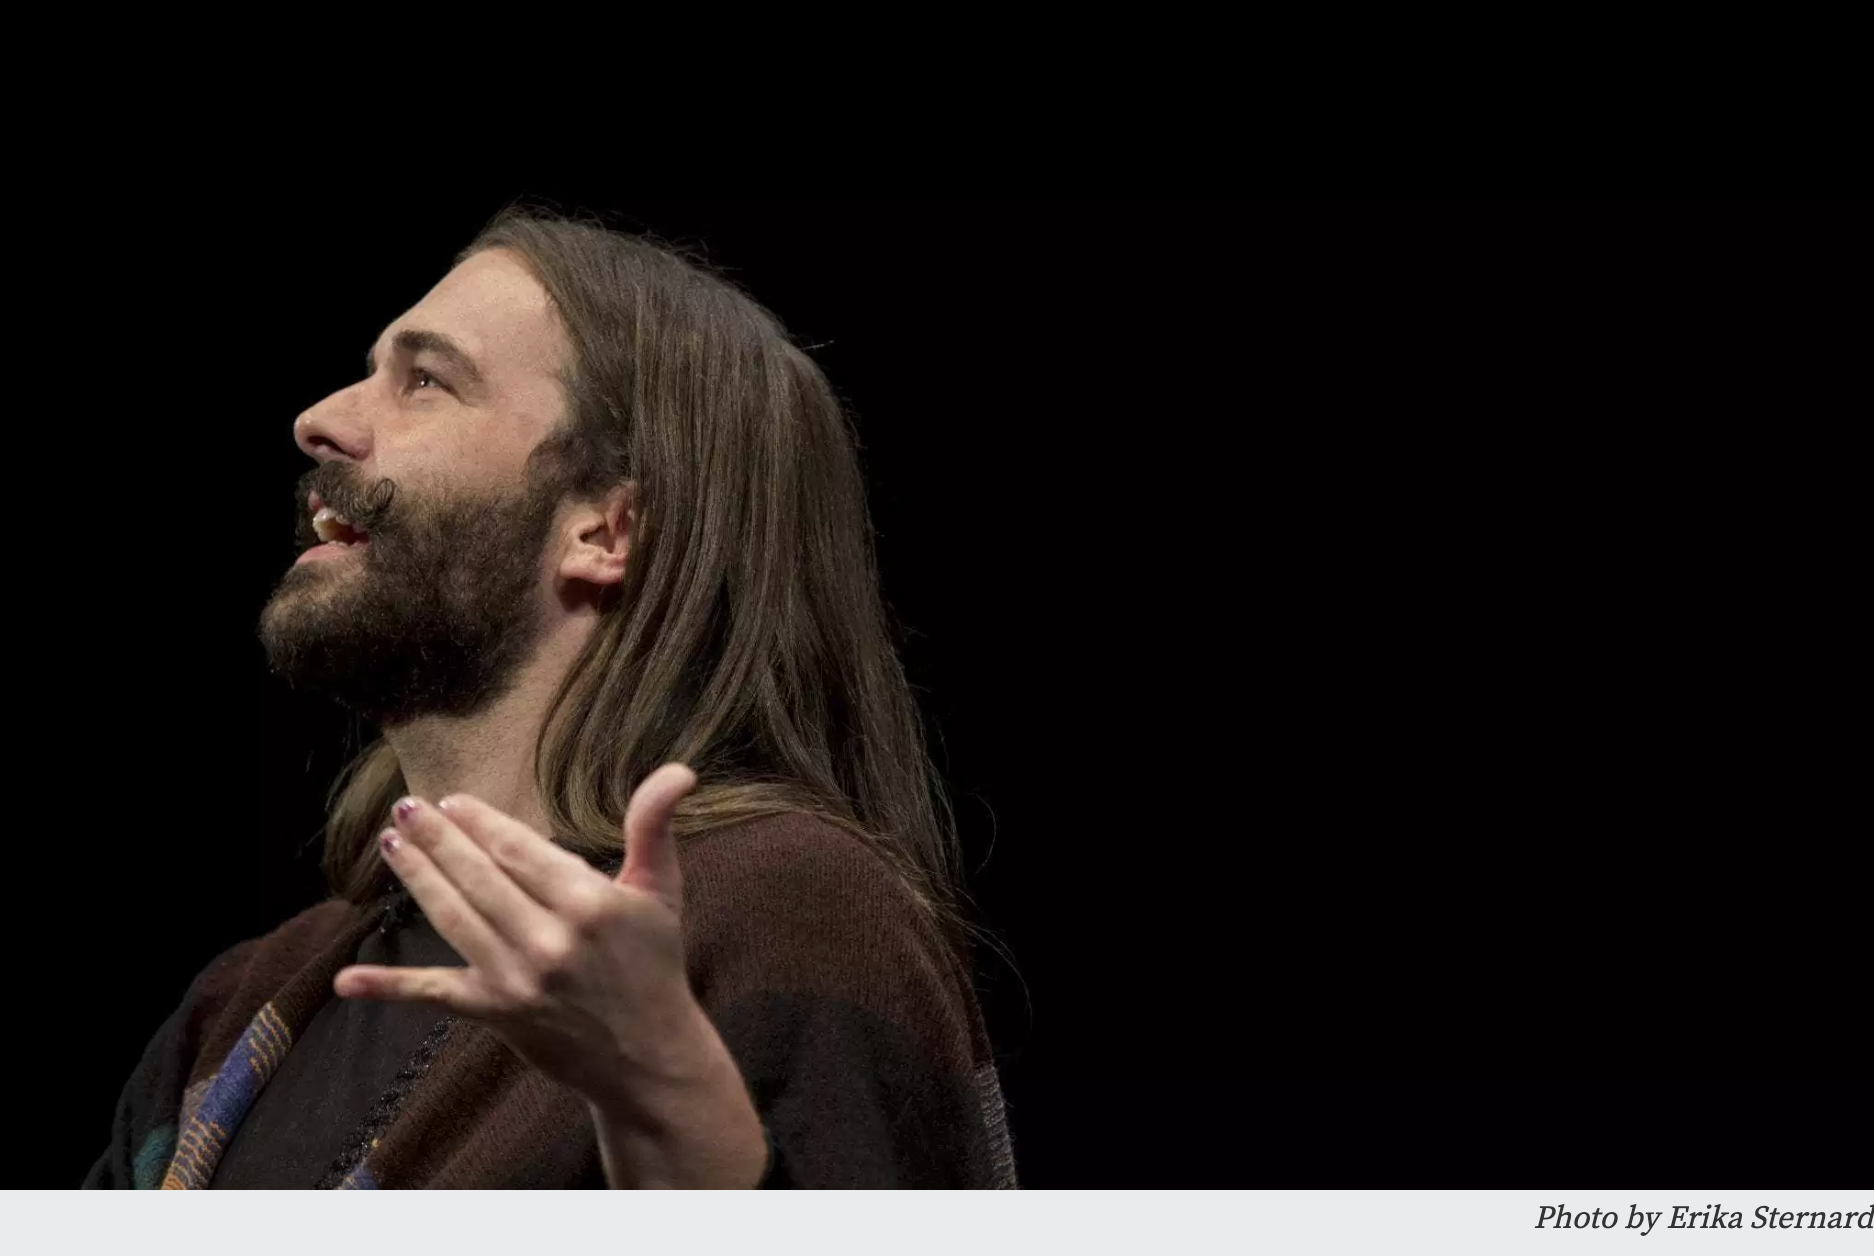 'Queer Eye's' Jonathan Van Ness reminds Cornell students to love themselves - I played a significant part in producing and editing this article written by Dakota Palmer, which explains JVN's lecture to college students on the importance of self-care. (TheNewshouse)